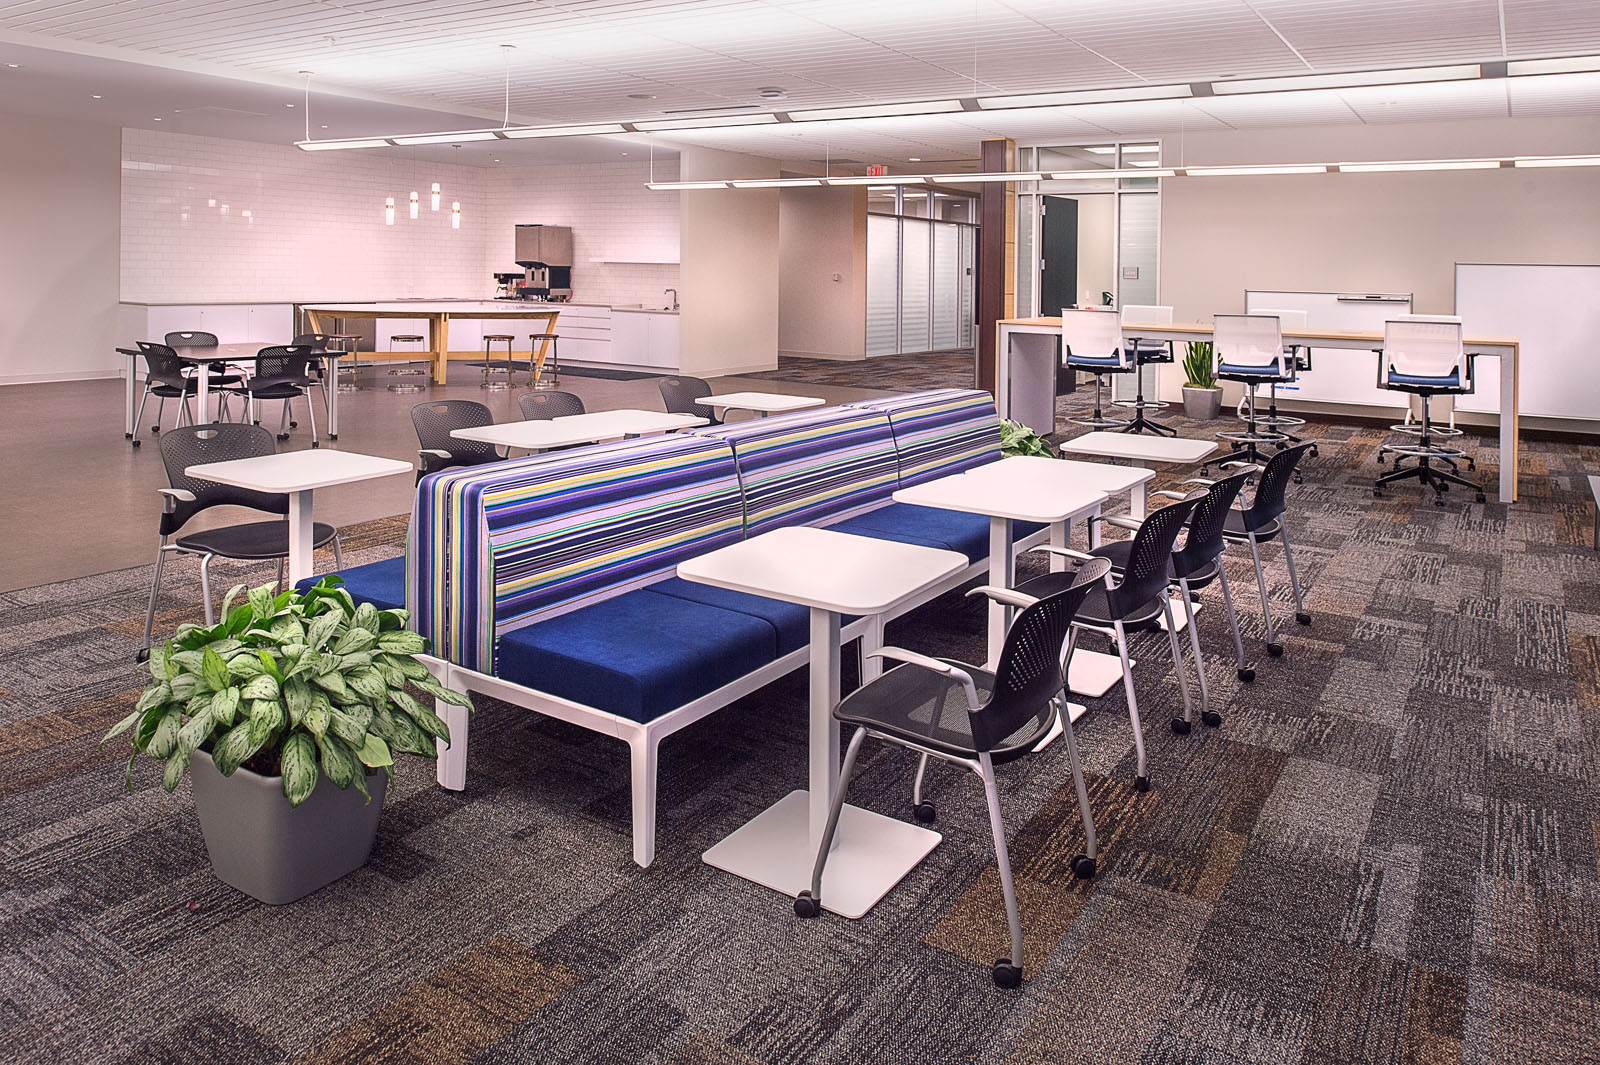 PARIC Corp worked closely with Express Scripts to develop interesting ways for employees to sit and connect with each other.